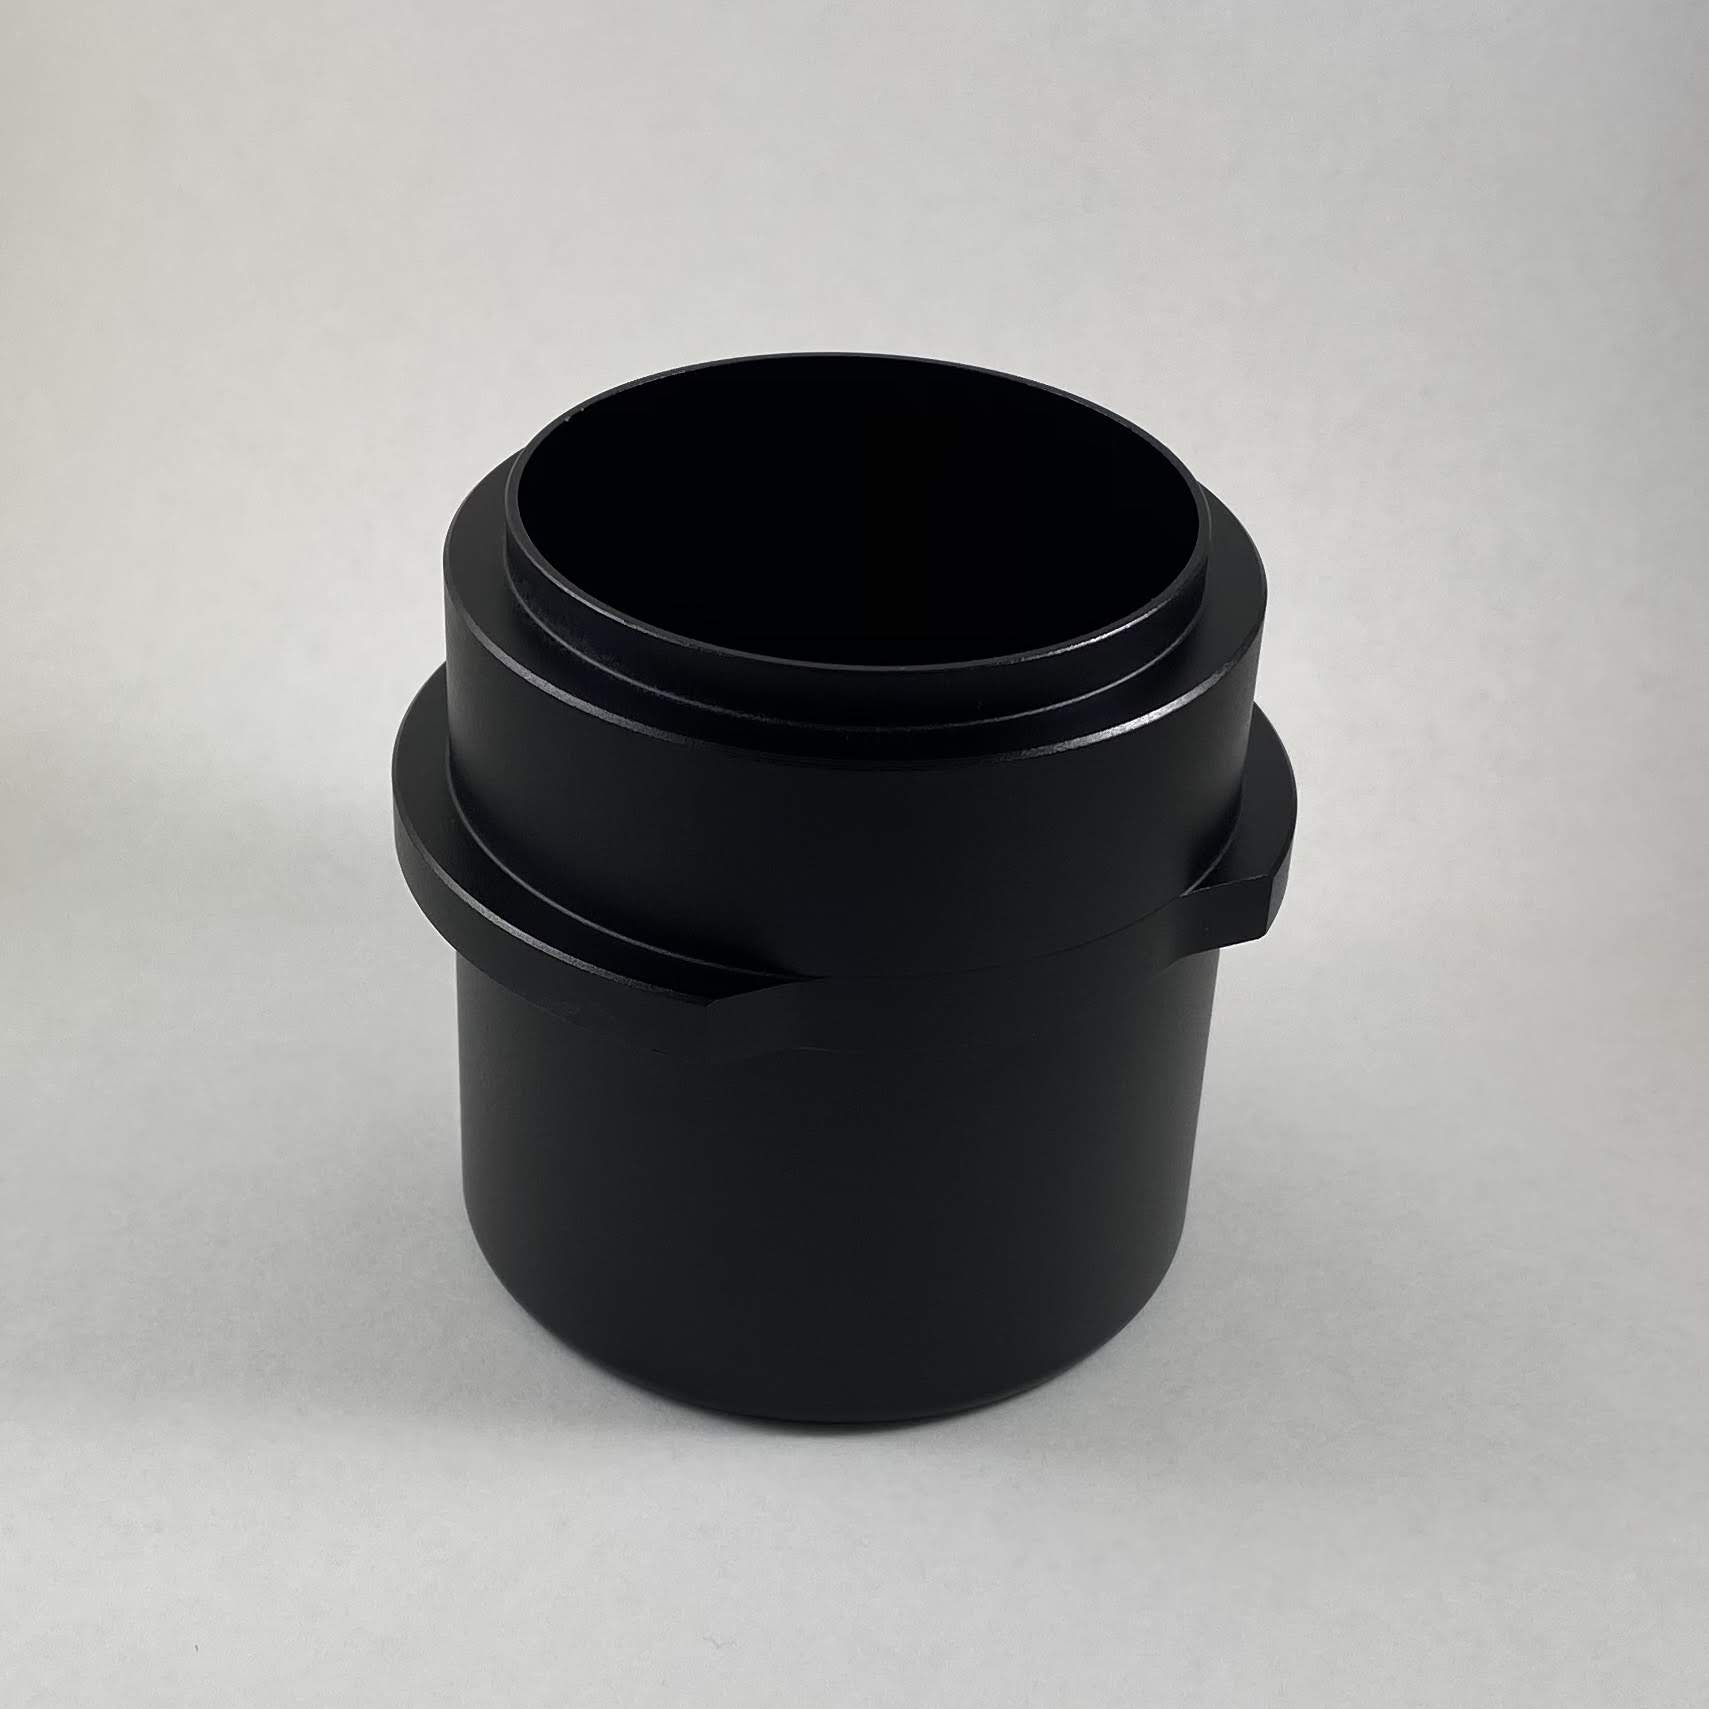 58mm Catch Cup